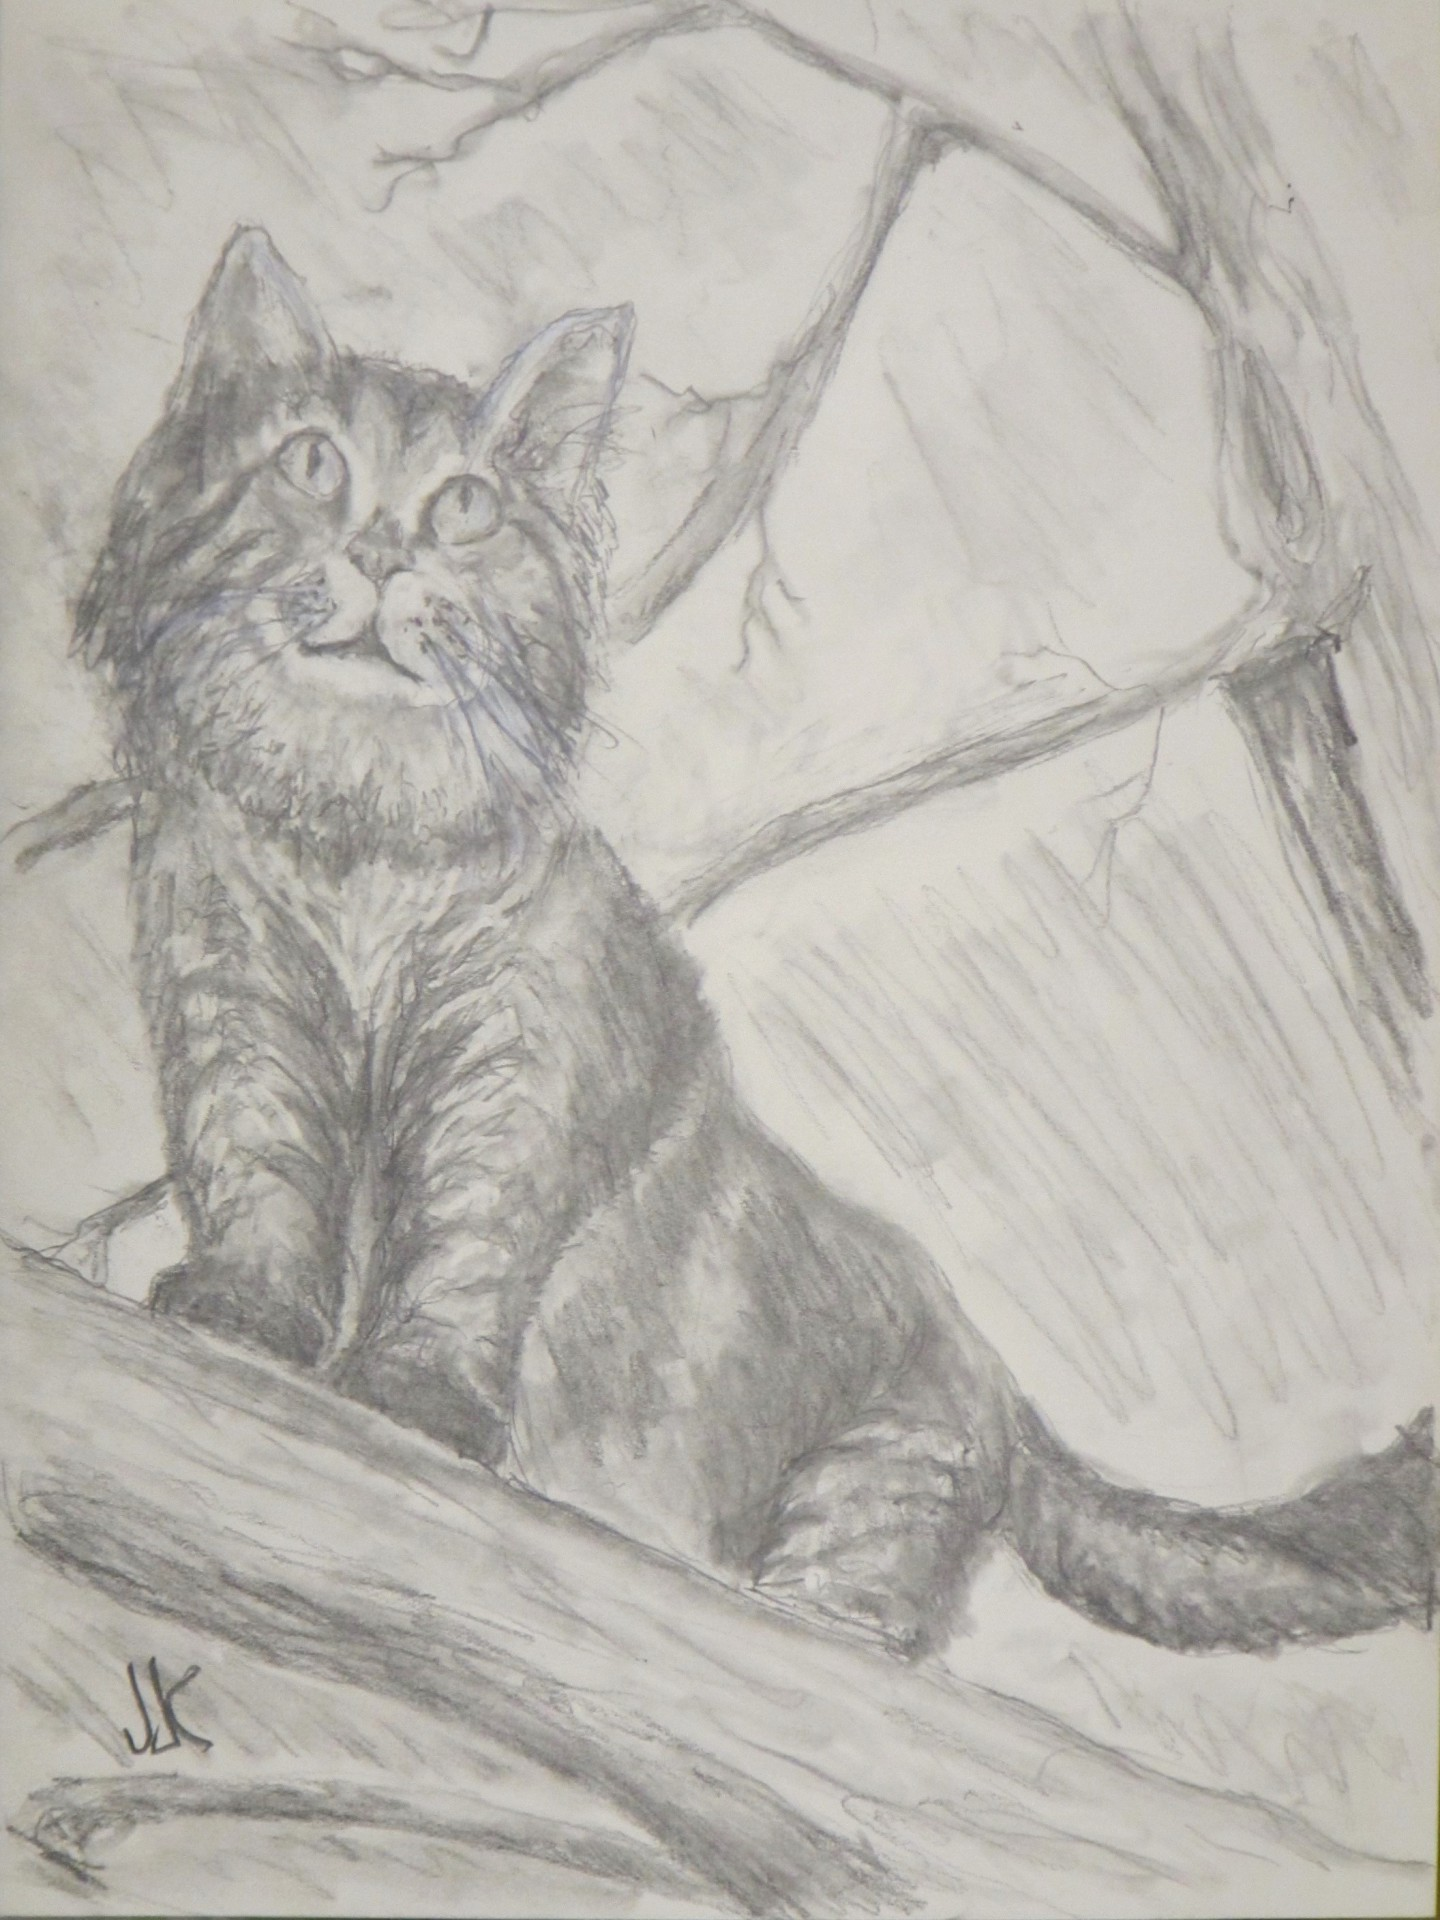 Pencil drawing of a cat hunting in a tree.